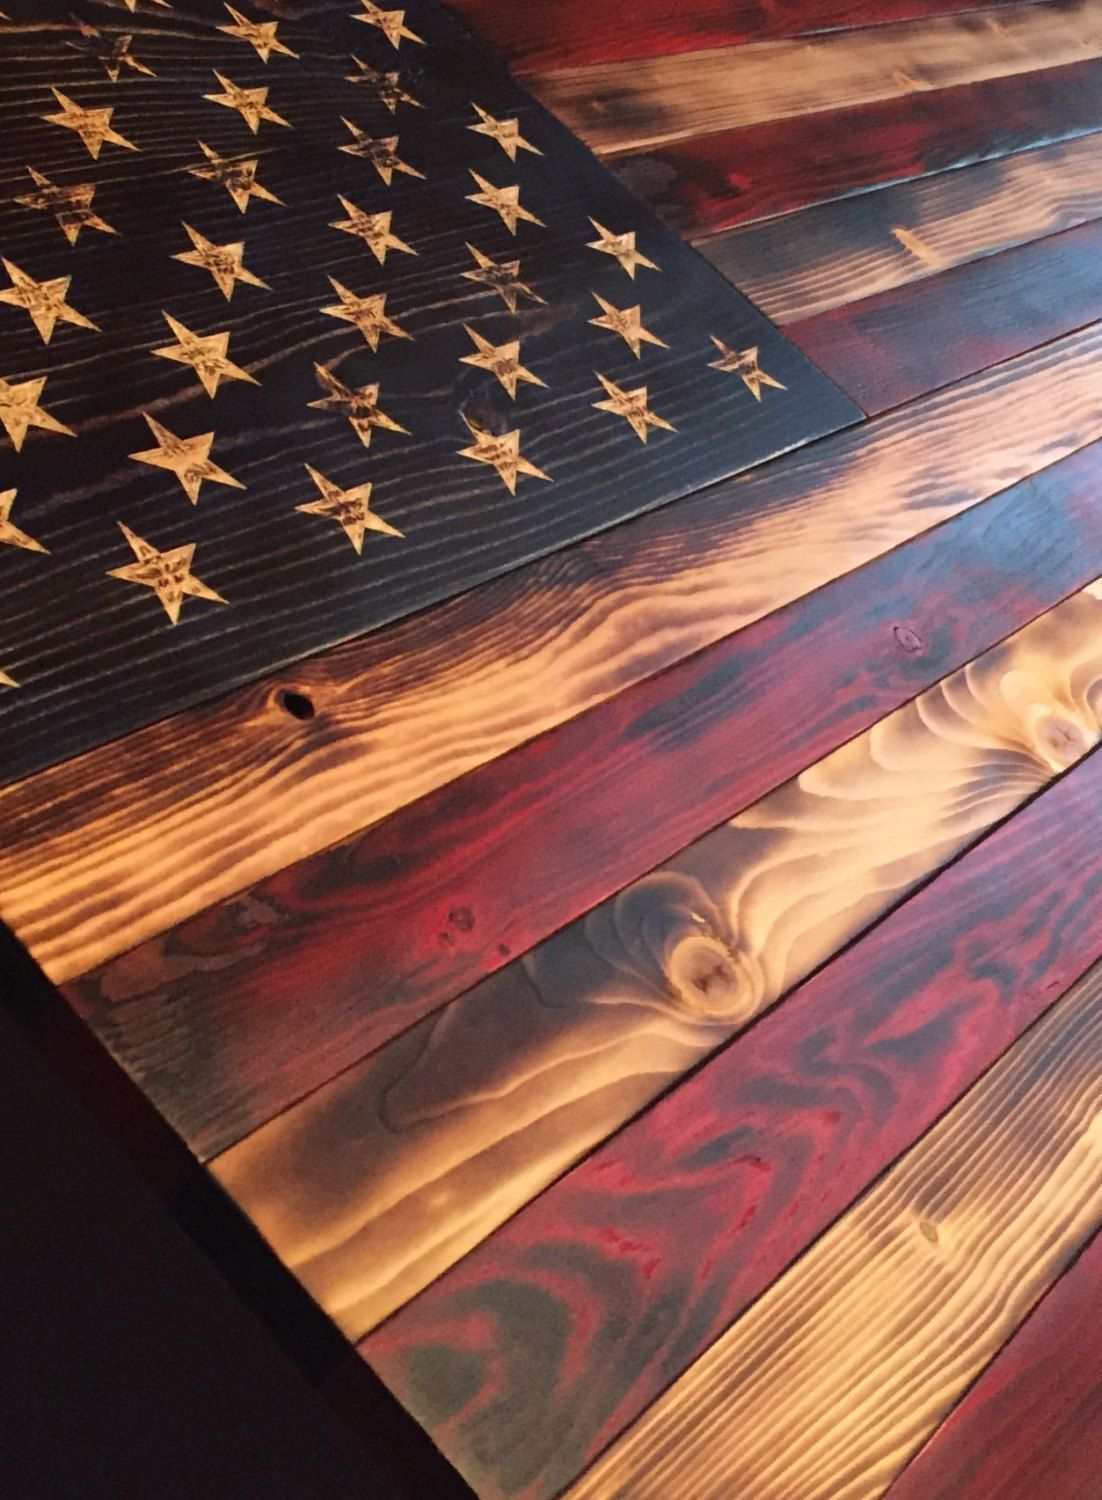 Hand Made 19 1 2 H X 38 W Each Piece Of Wood Is Hand Burned And